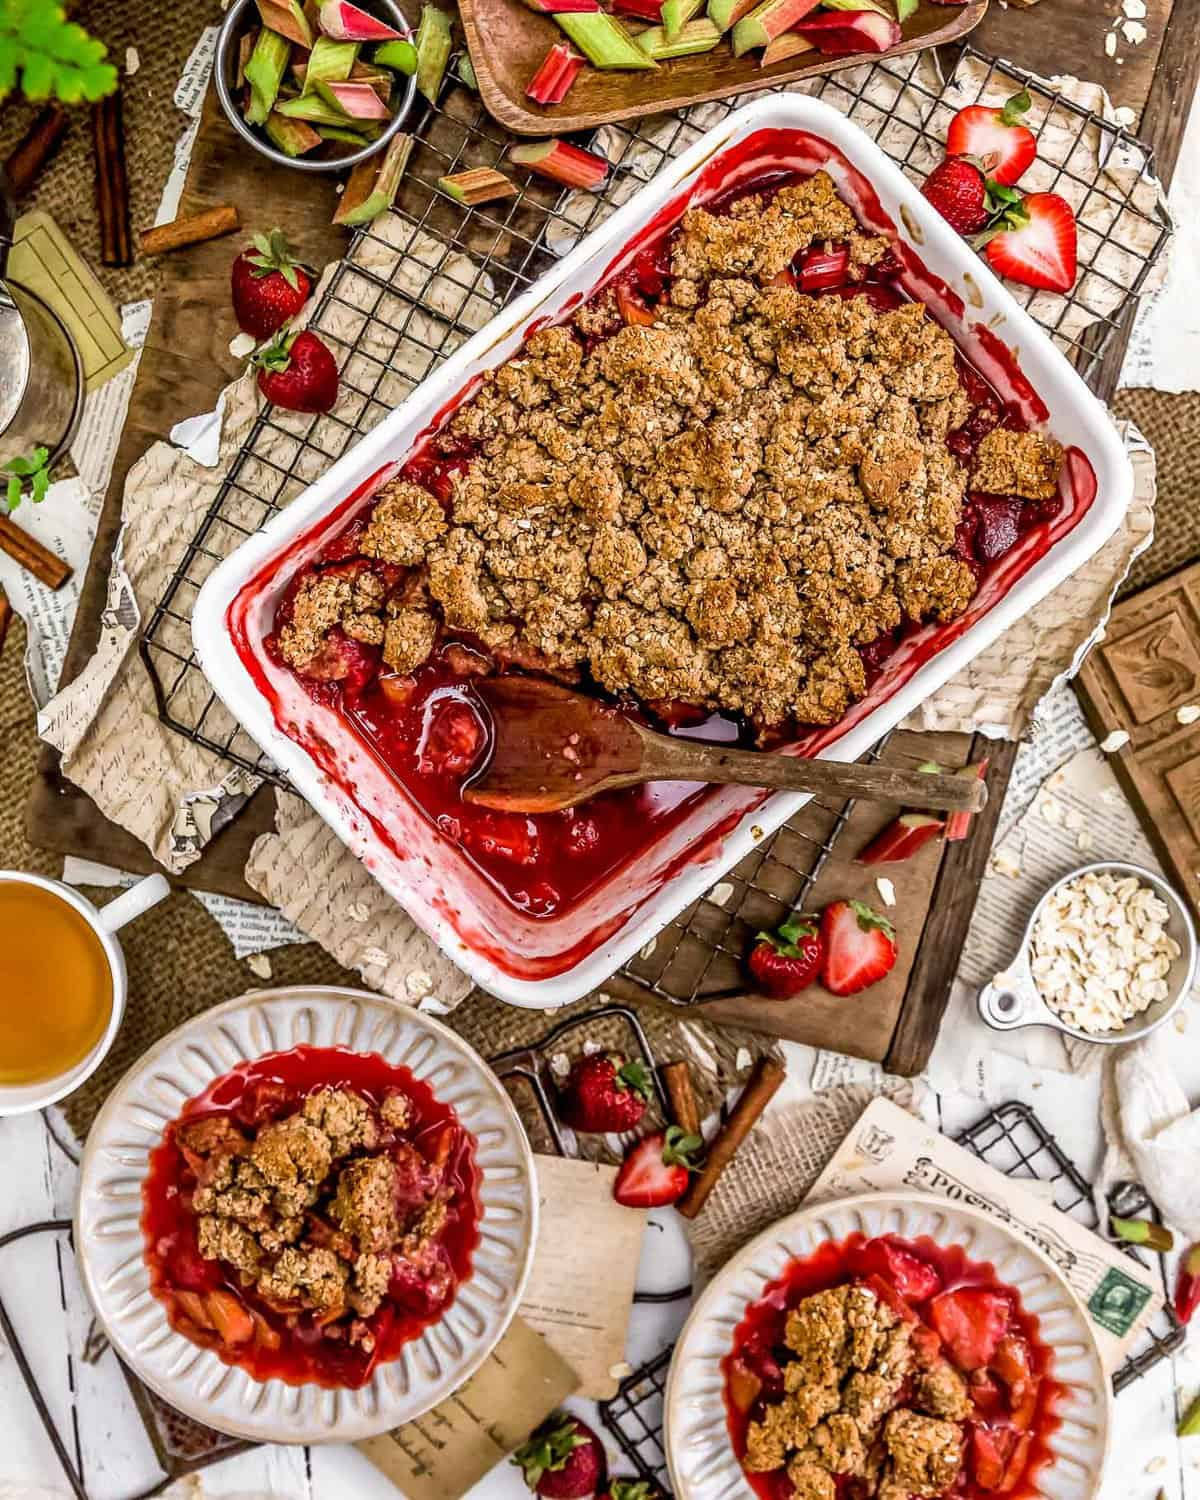 Tablescape of Strawberry Rhubarb Crumble